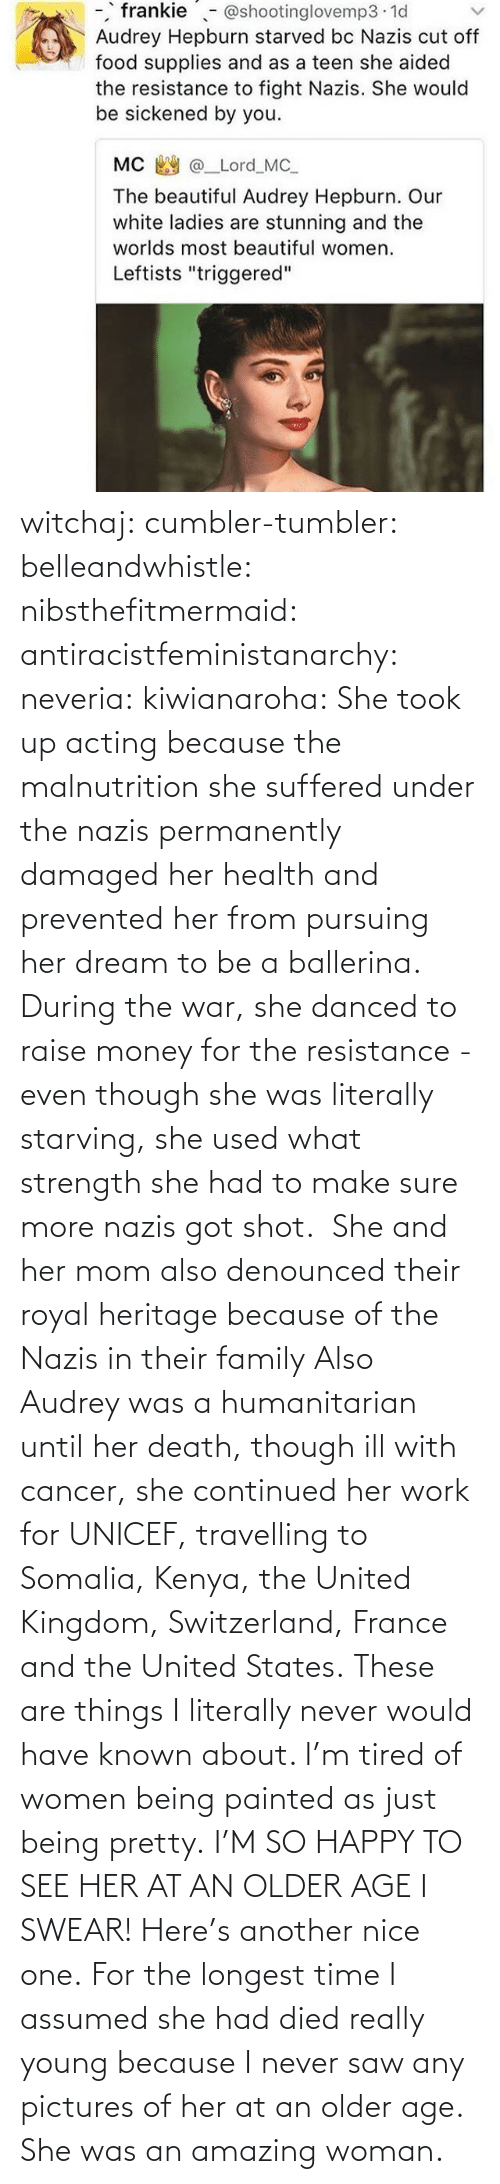 Target: witchaj: cumbler-tumbler:  belleandwhistle:  nibsthefitmermaid:  antiracistfeministanarchy:  neveria:  kiwianaroha: She took up acting because the malnutrition she suffered under the nazis permanently damaged her health and prevented her from pursuing her dream to be a ballerina. During the war, she danced to raise money for the resistance - even though she was literally starving, she used what strength she had to make sure more nazis got shot.  She and her mom also denounced their royal heritage because of the Nazis in their family  Also Audrey was a humanitarian until her death, though ill with cancer, she continued her work for UNICEF, travelling to Somalia, Kenya, the United Kingdom, Switzerland, France and the United States.  These are things I literally never would have known about. I'm tired of women being painted as just being pretty.  I'M SO HAPPY TO SEE HER AT AN OLDER AGE I SWEAR!  Here's another nice one.   For the longest time I assumed she had died really young because I never saw any pictures of her at an older age.  She was an amazing woman.